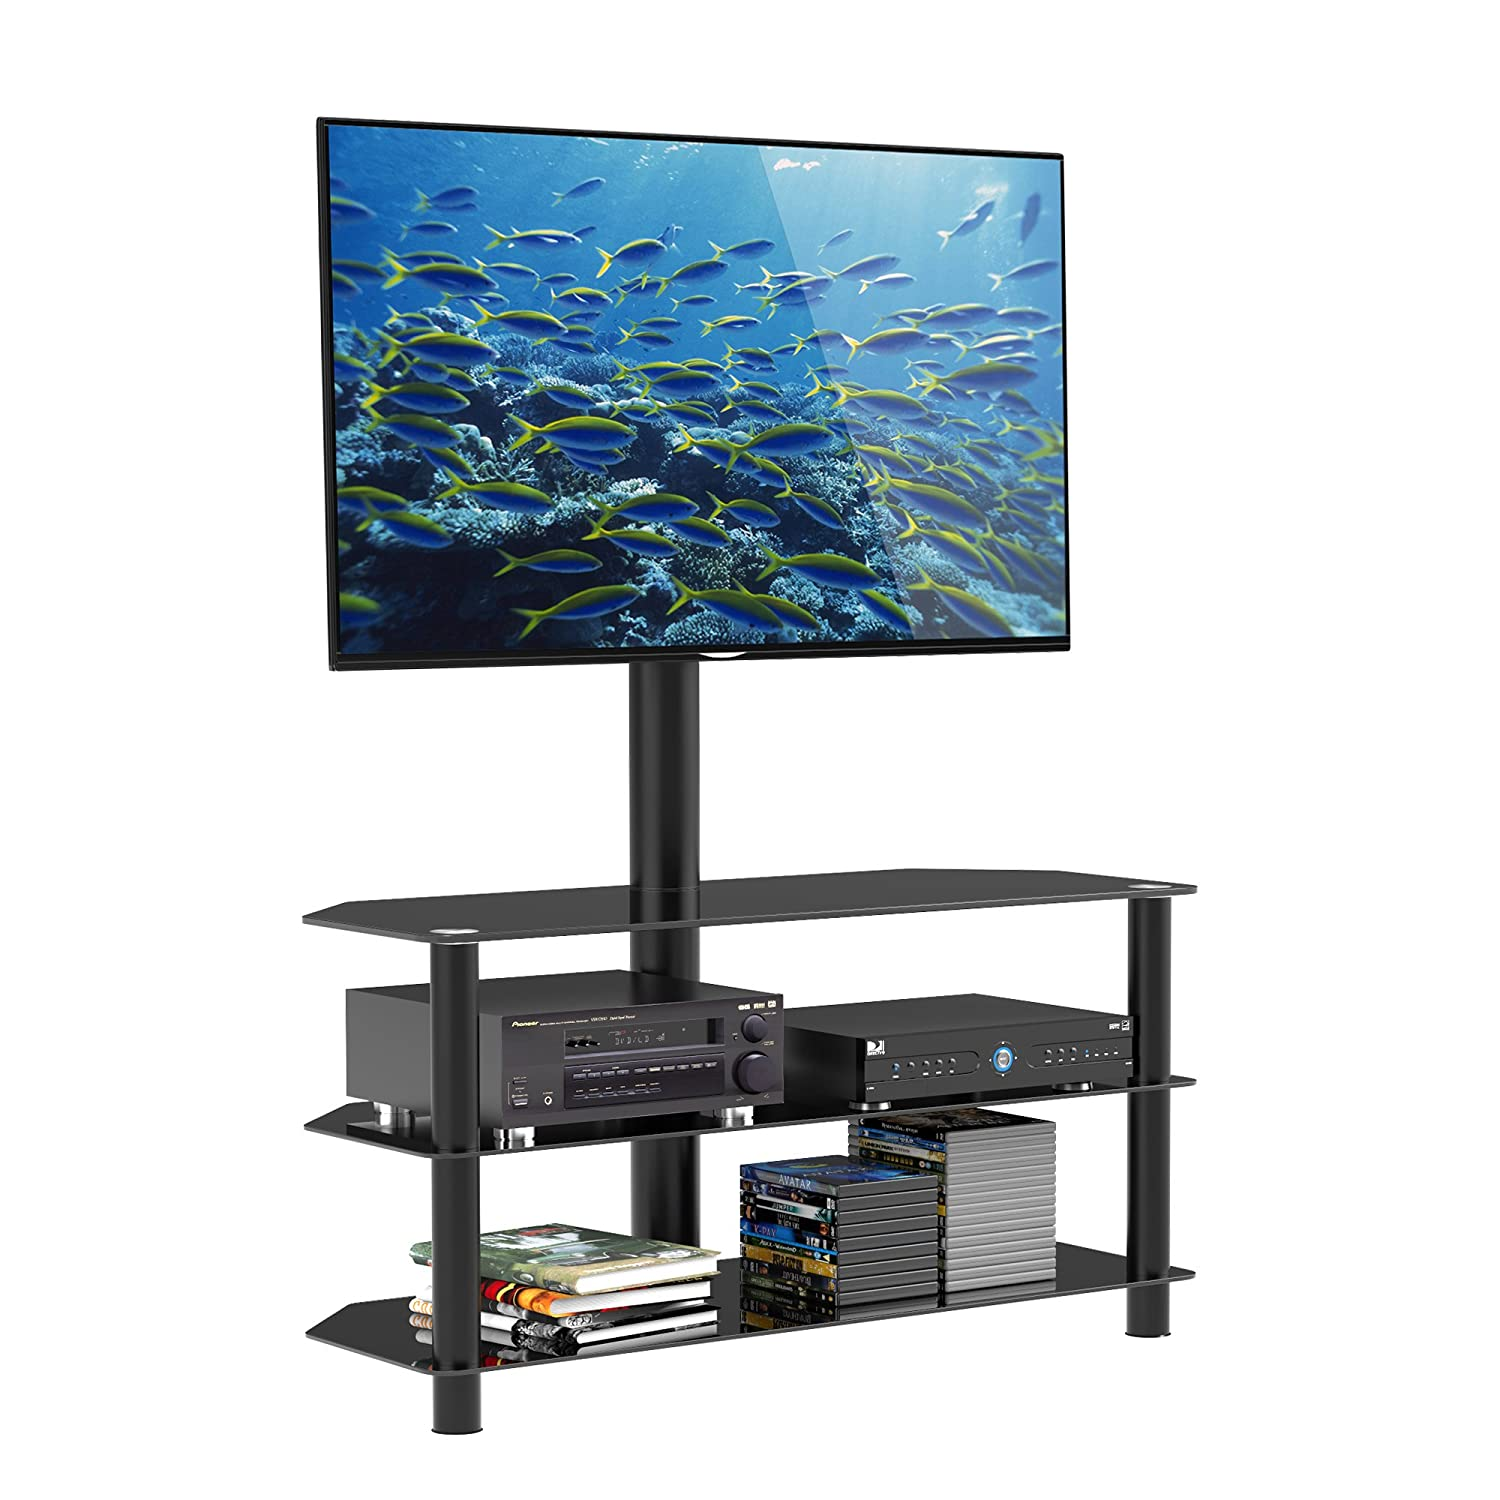 1home TV Stand with Bracket Mount Swiel for 32 inch to 70 inch WAV 1100